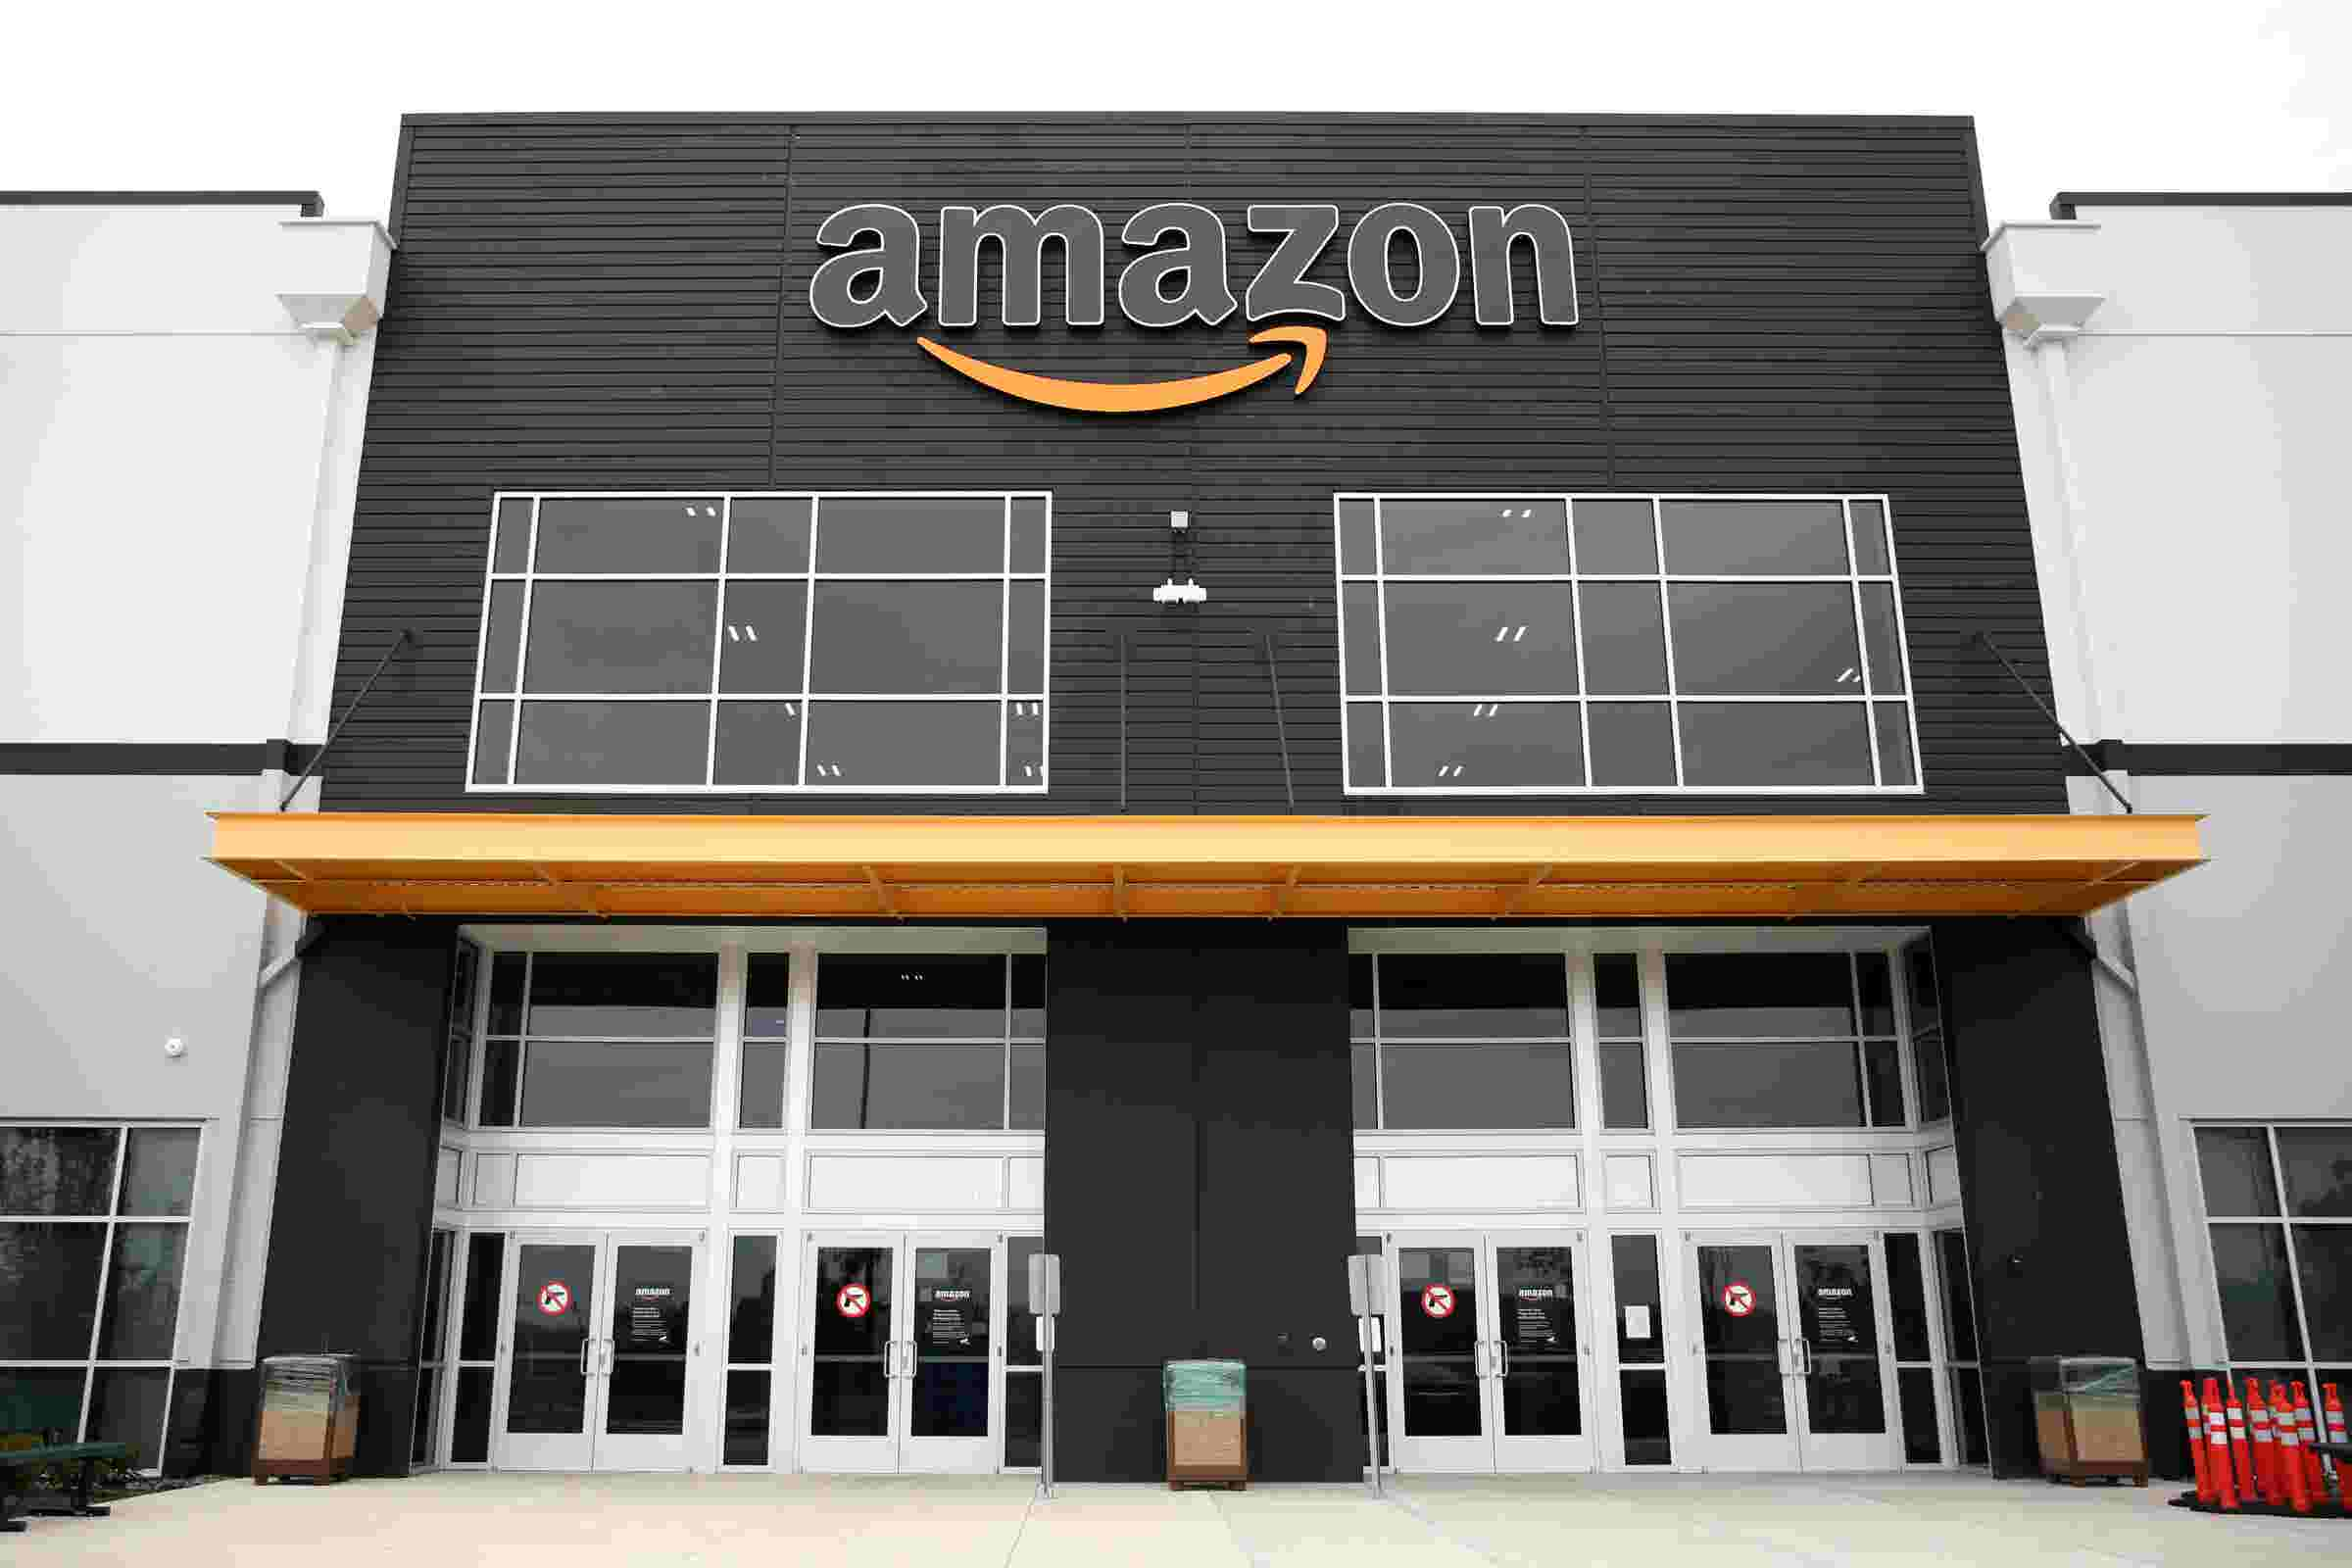 Amazon begins hiring to fill 800 positions in Salem